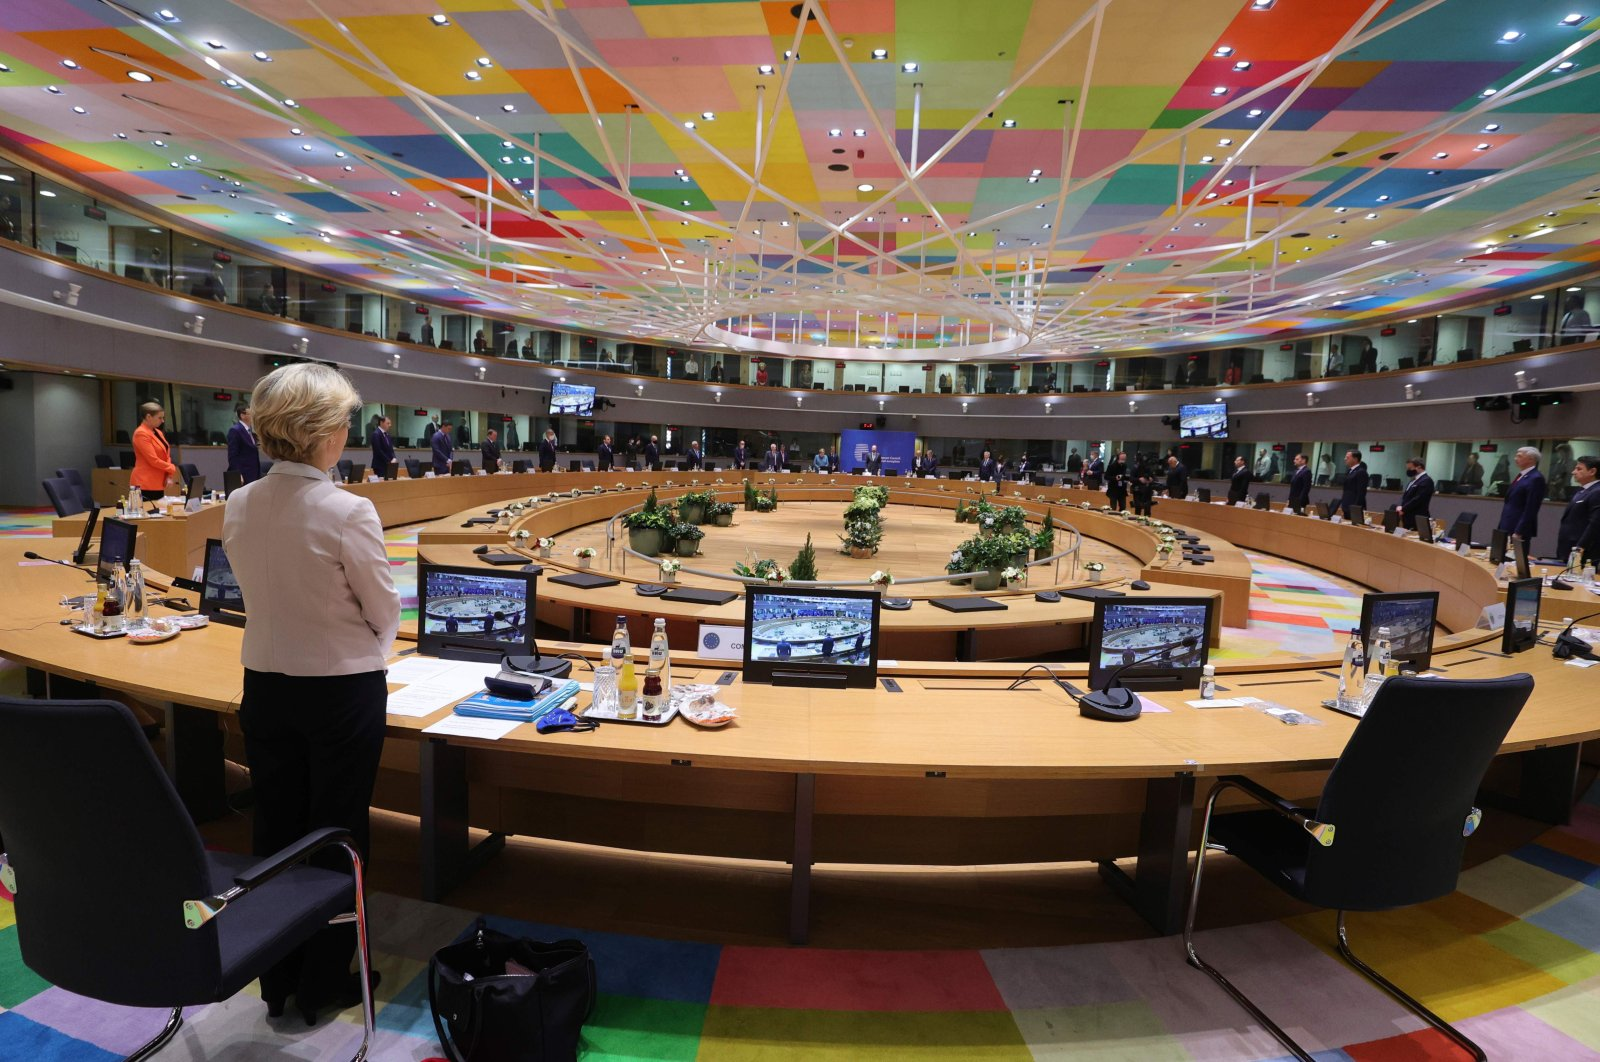 President of the European Commission Ursula von der Leyen (1st from left) and EU leaders observe a minute silent in tribute to late French President Valery Giscard d'Estaing prior to a round table meeting during an EU summit at the European Council building in Brussels, Belgium, Dec. 10, 2020. (AFP Photo)